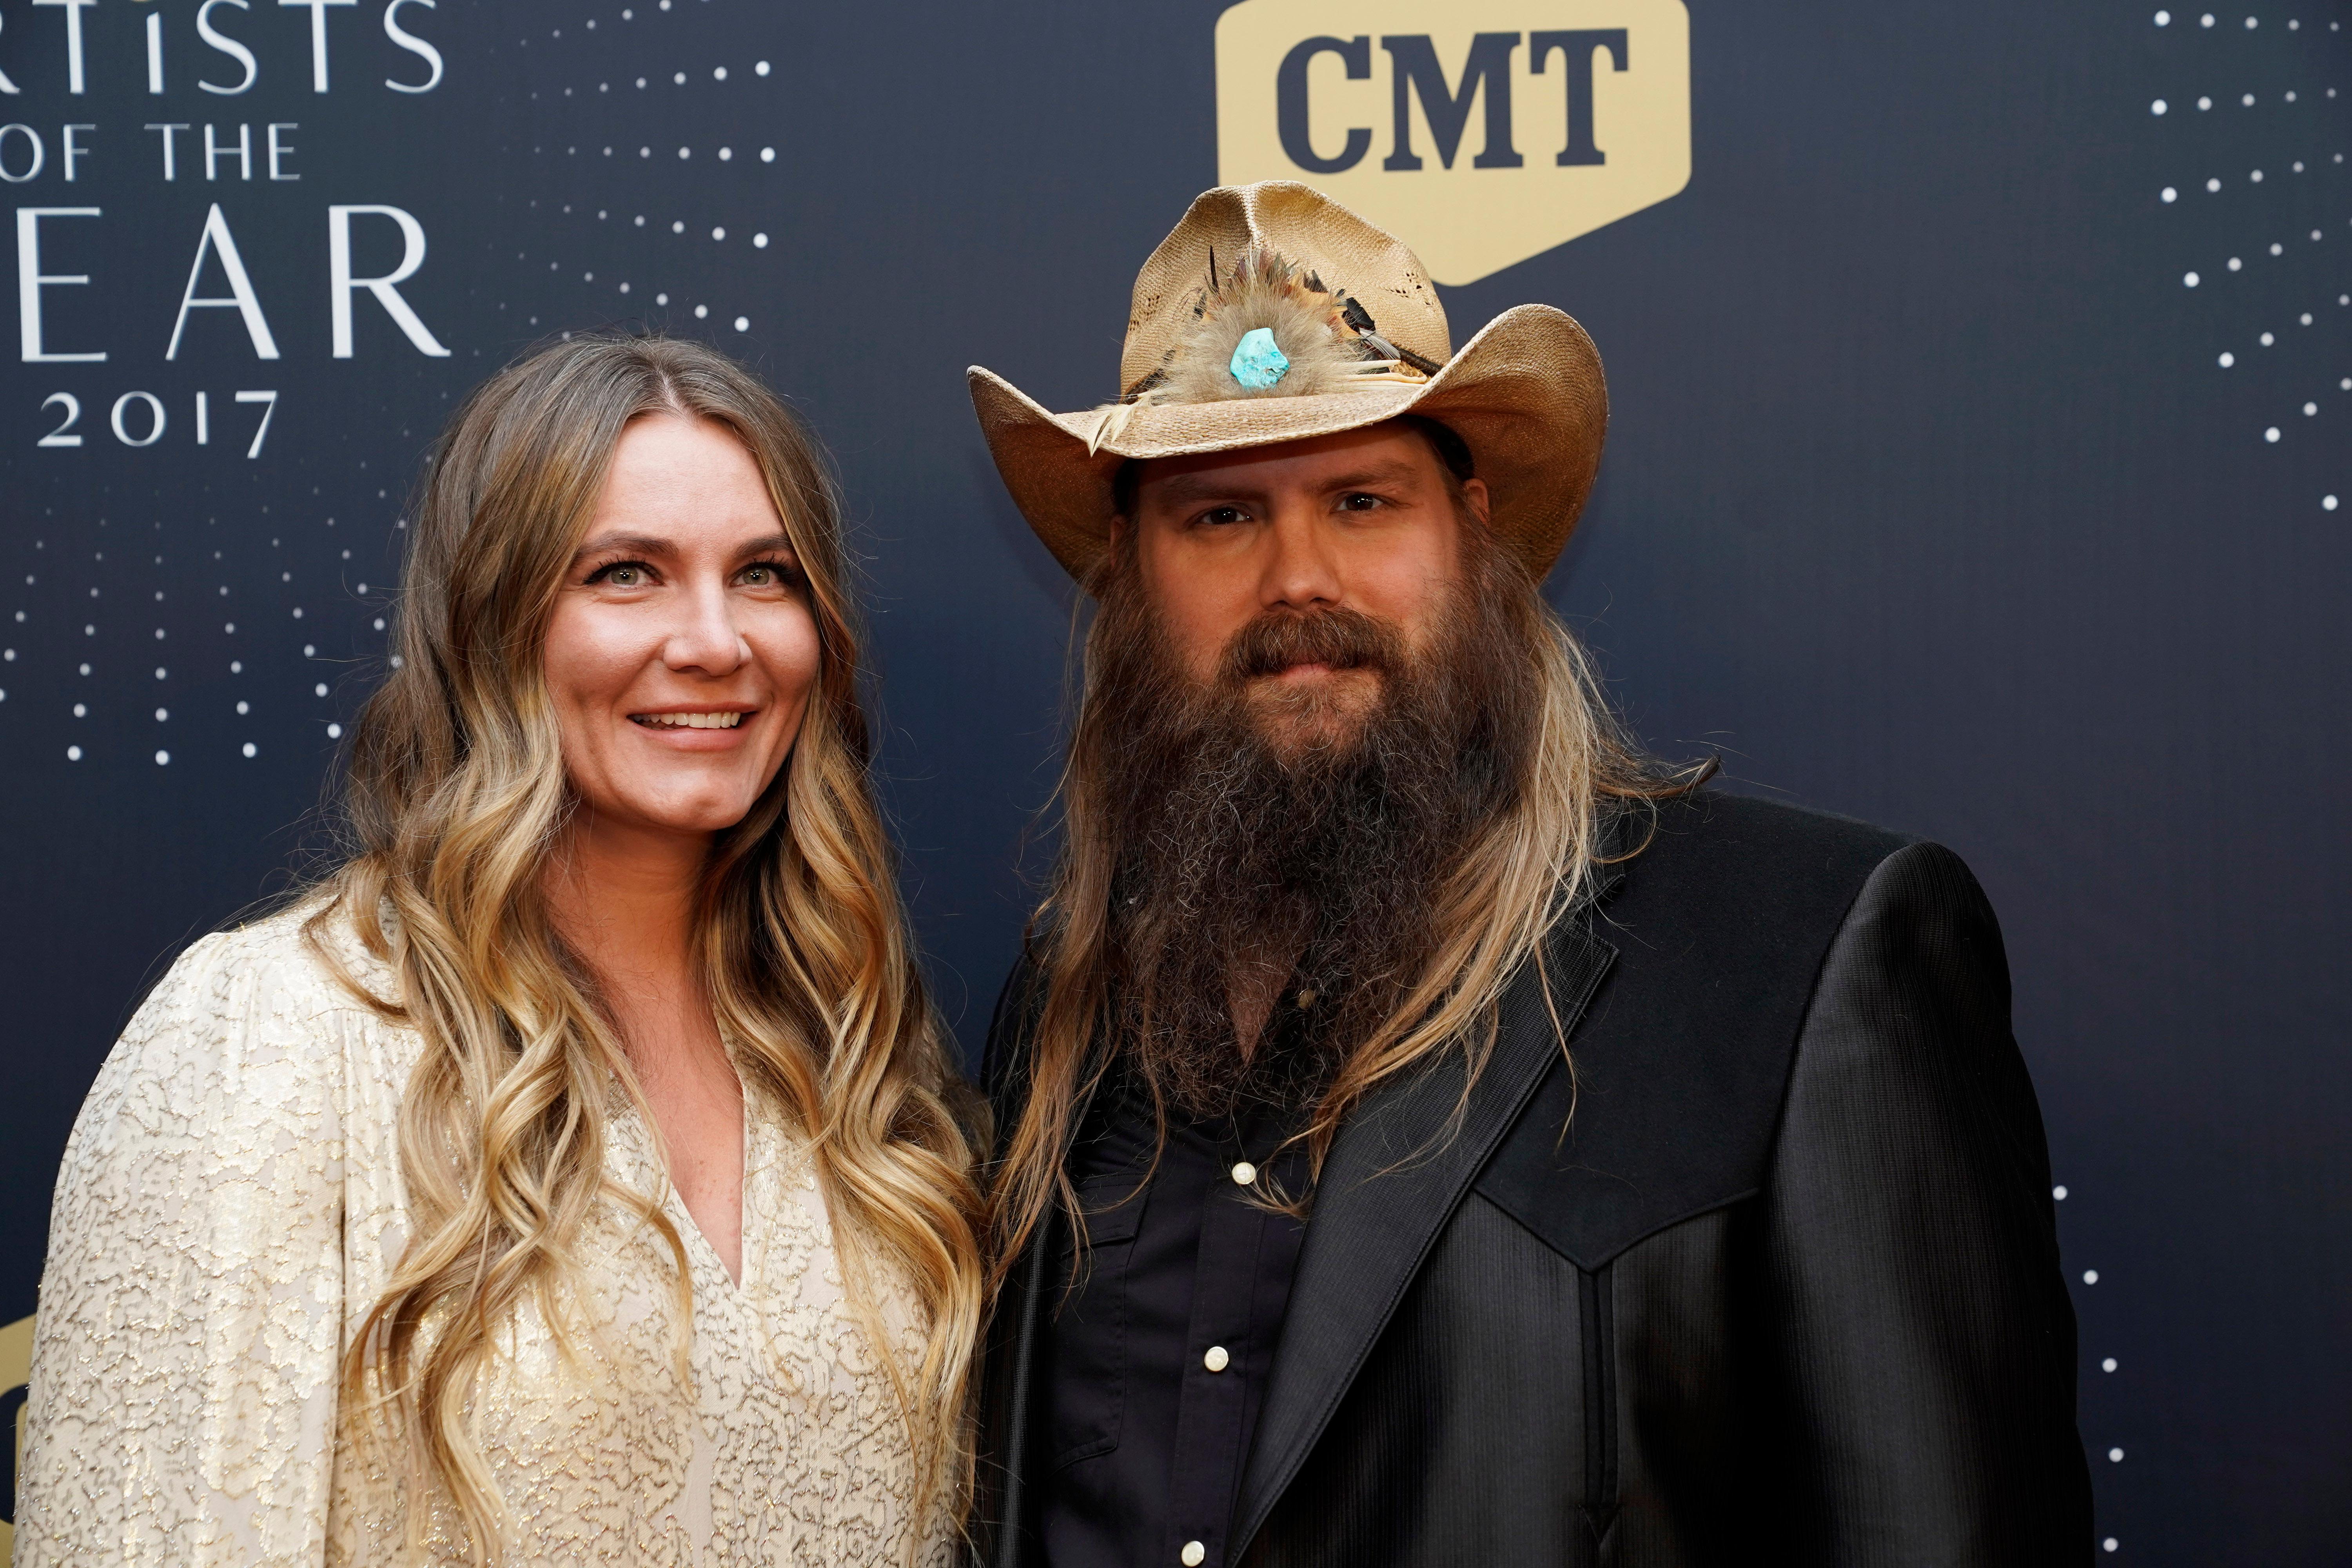 Chris Stapleton and wife Morgane Stapleton seen at 2017 CMT Artists of the Year at Schermerhorn Symphony Center on Wednesday, Oct. 18, 2017, in Nashville, Tenn. (Photo by Sanford Myers/Invision/AP)